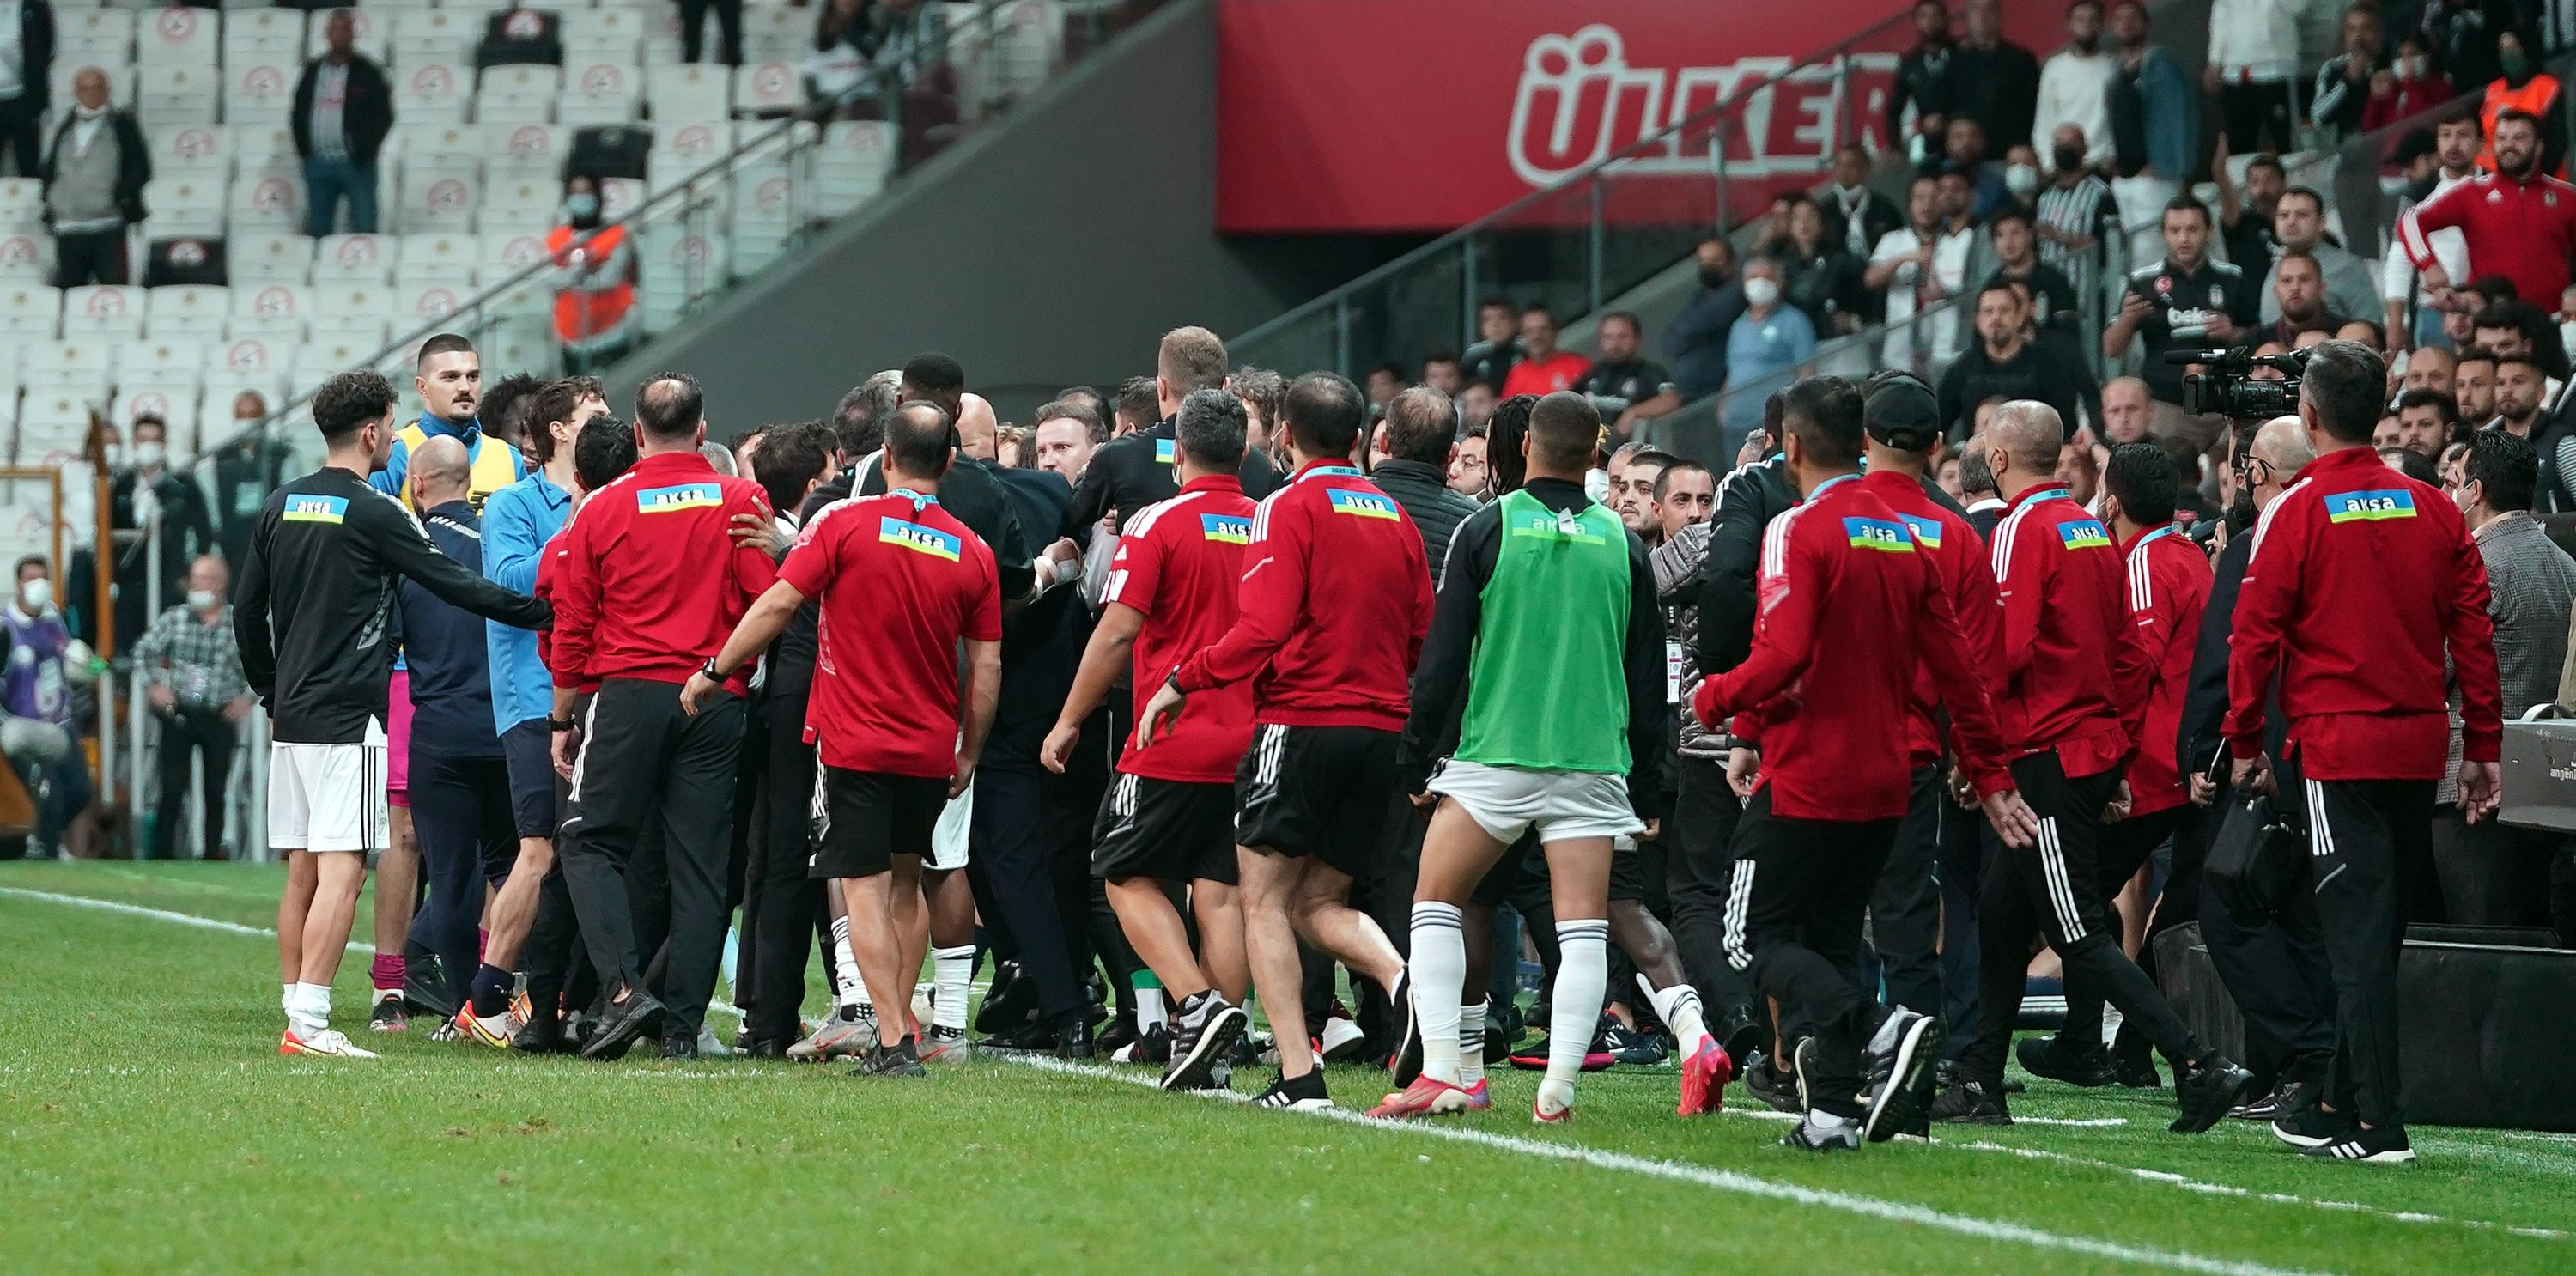 Beşiktaş and Adana Demirspor staff engage in a scuffle at the end of a Turkish Süper Lig match at Vodafone Park, Istanbul, Turkey, Sept. 21, 2021. (IHA Photo)